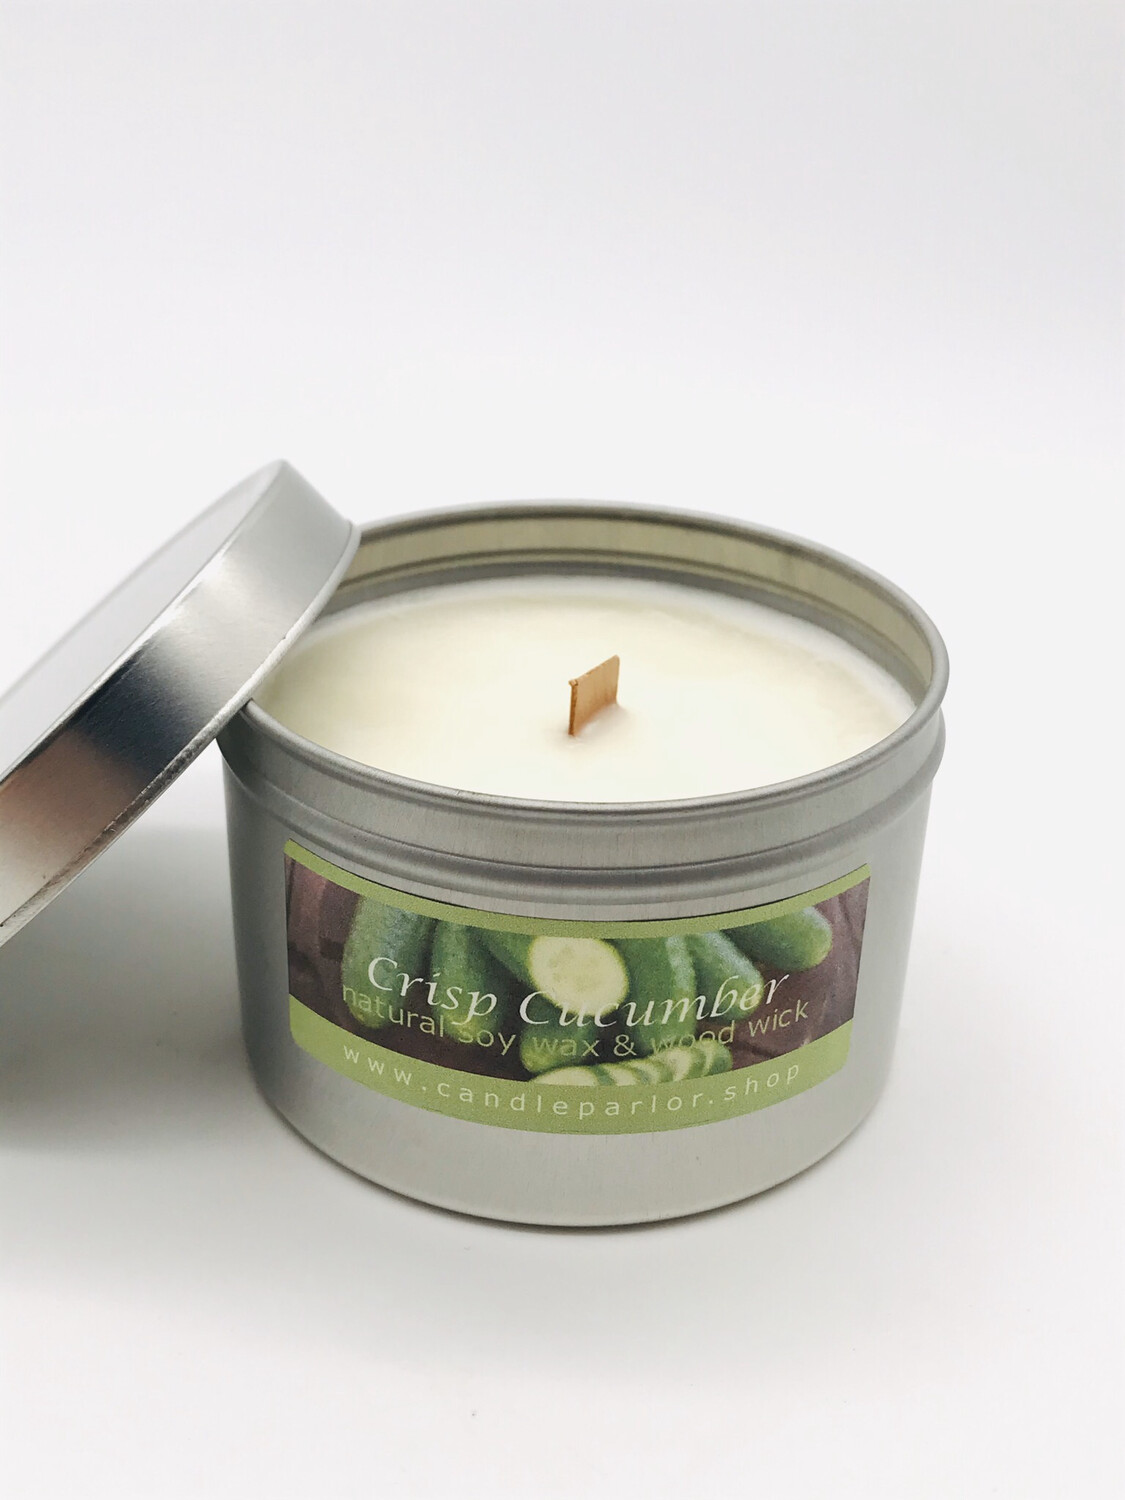 Crisp Cucumber Scented Soy Wax Candle with Wood Wick, 6 oz Tin.